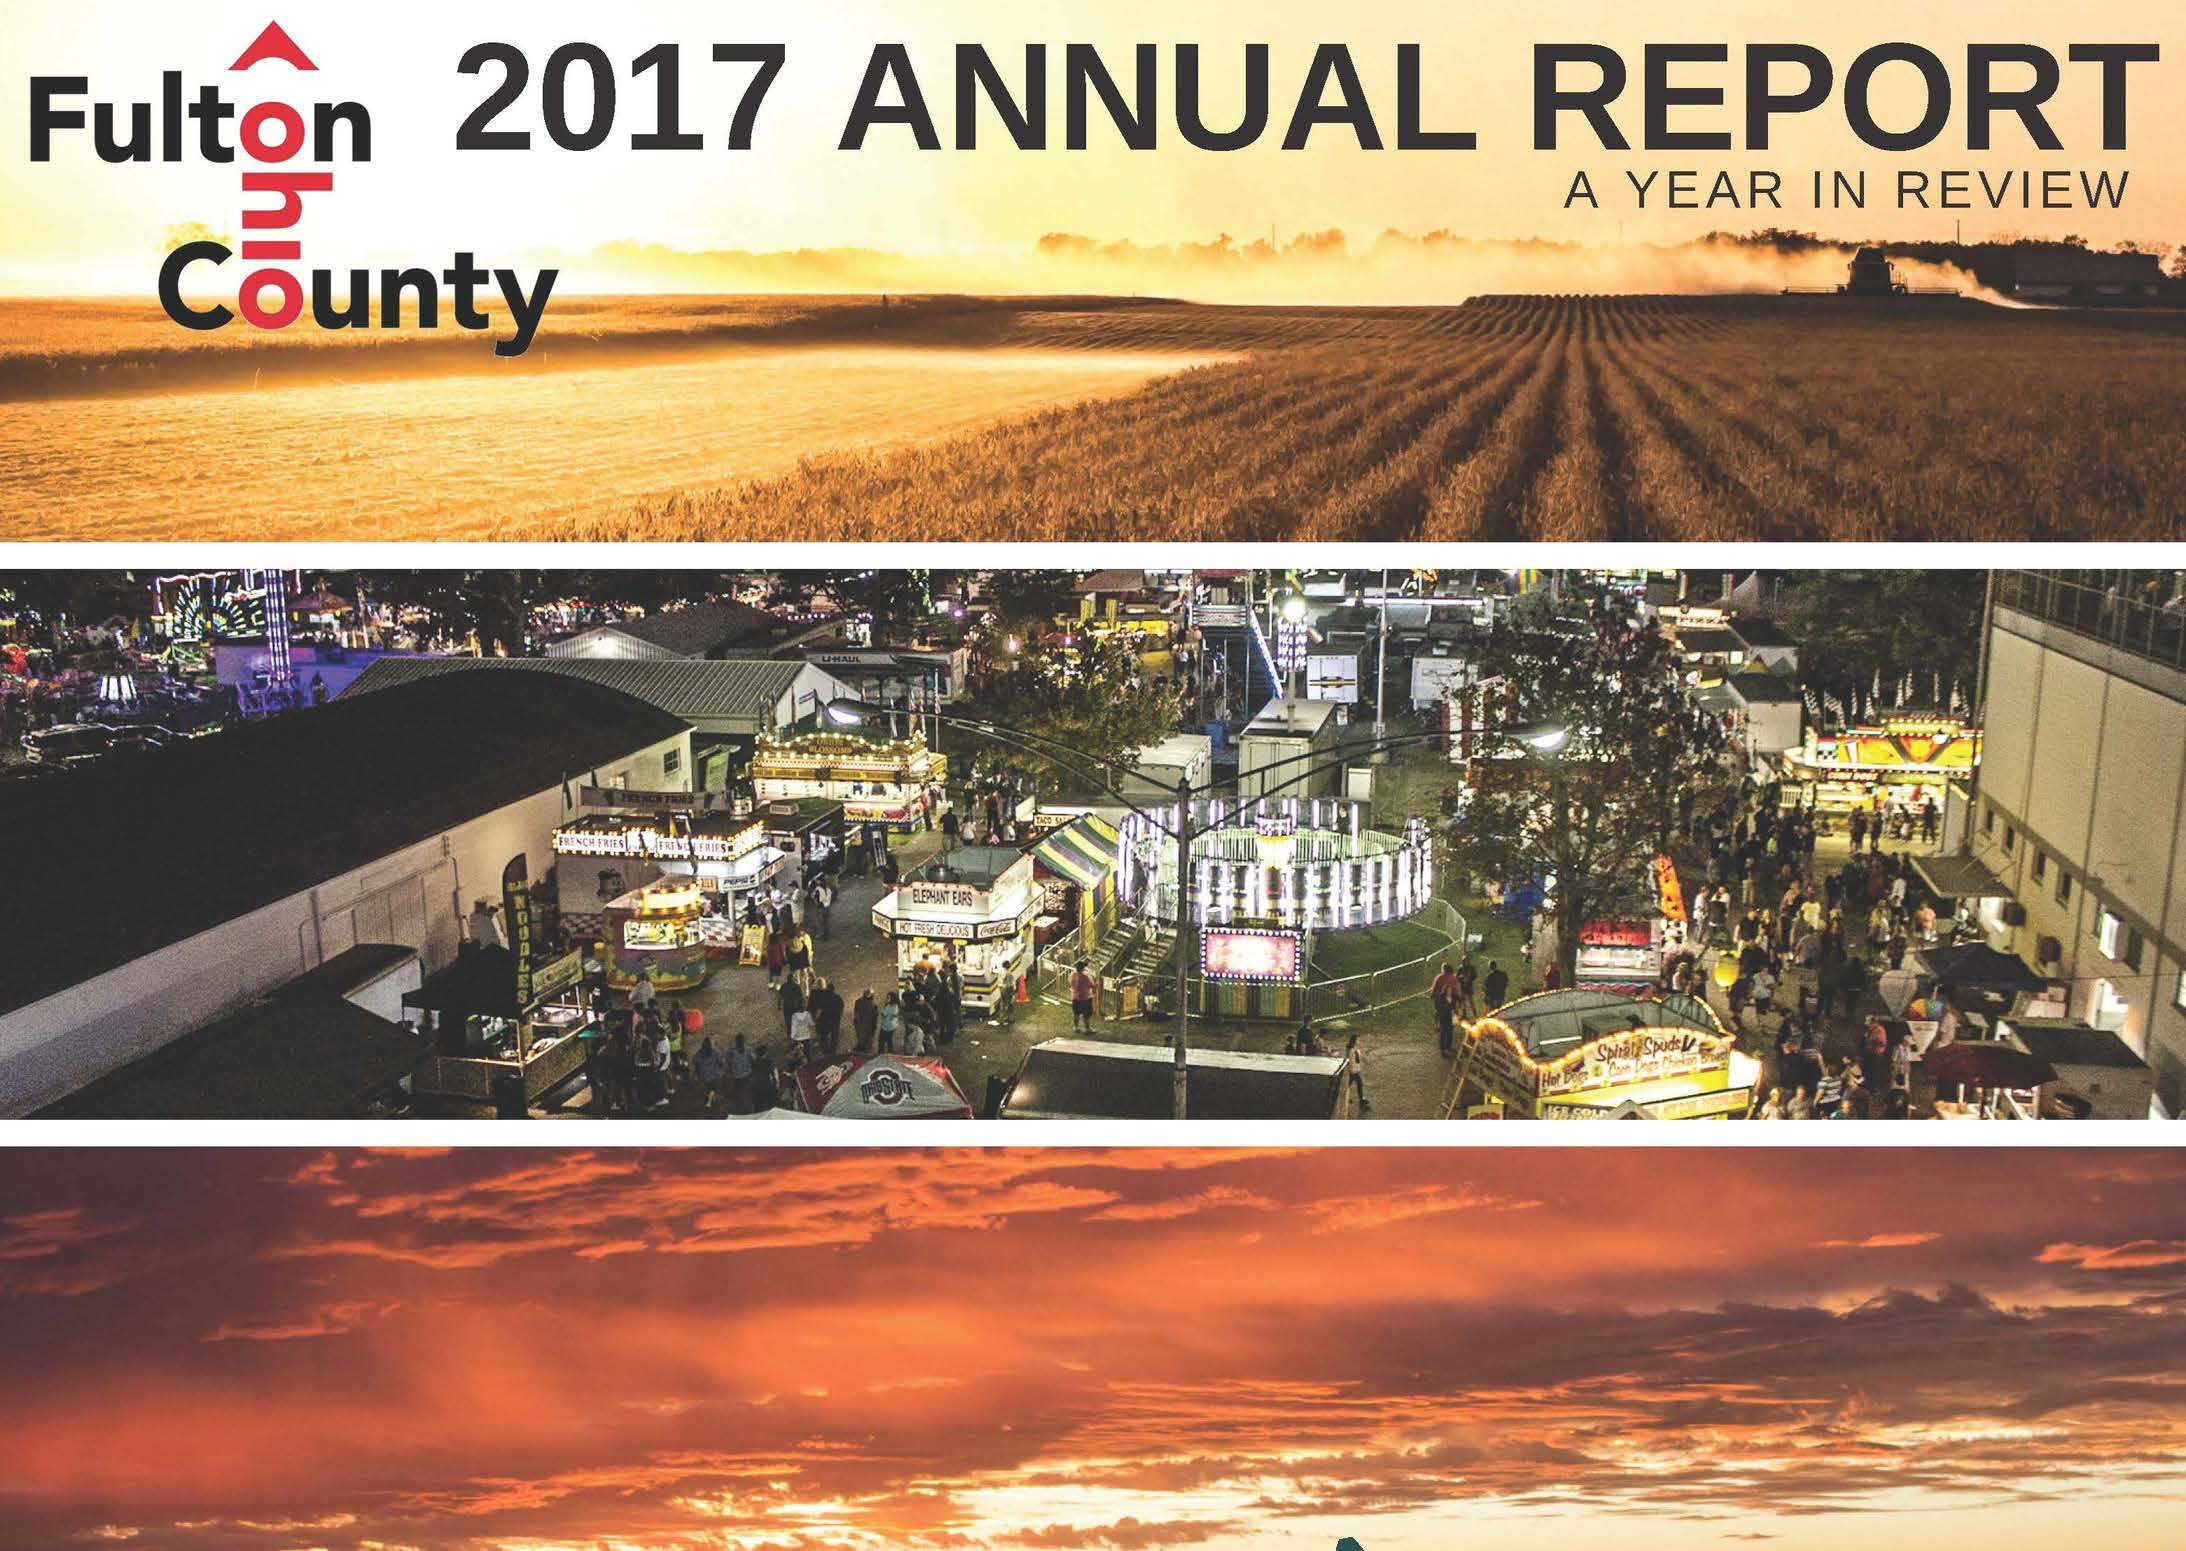 2017 Annual Report Website Image